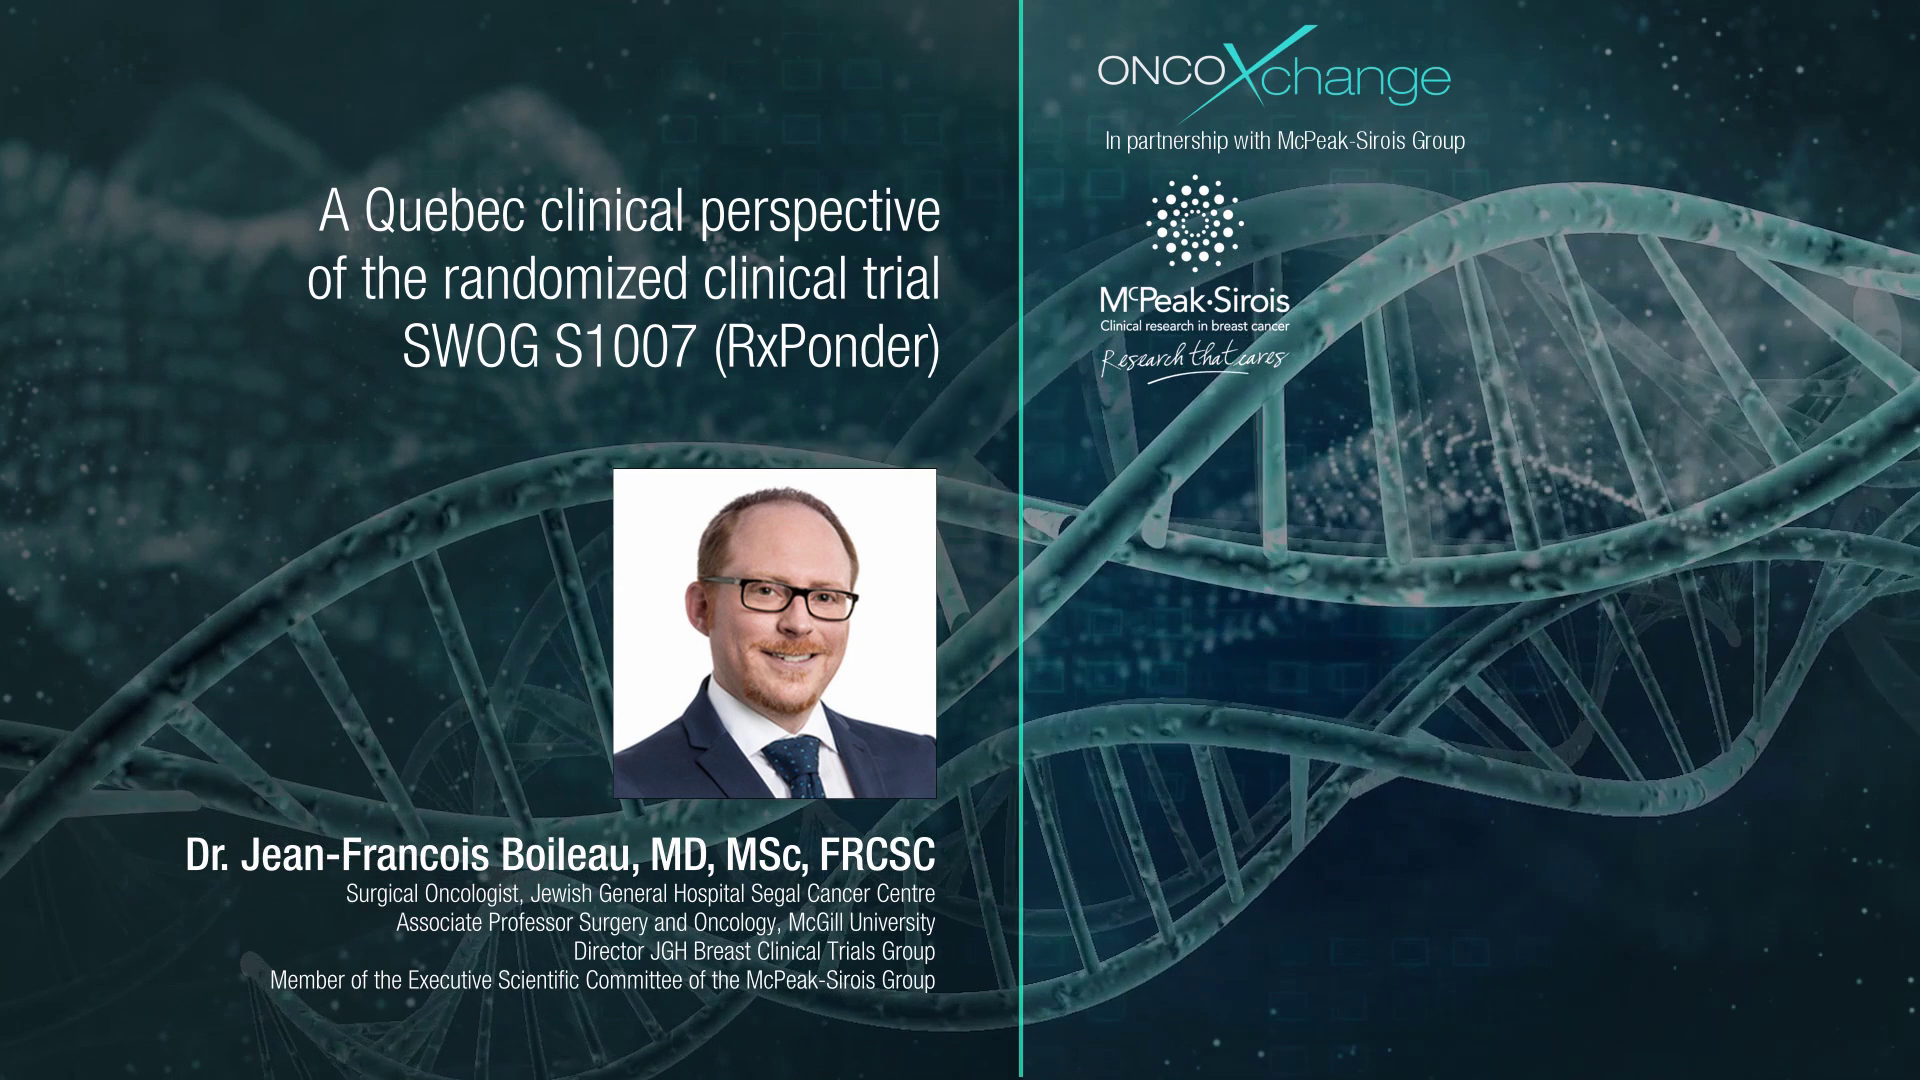 A Quebec clinical perspective of the randomized clinical trial SWOG S1007 (RxPonder)